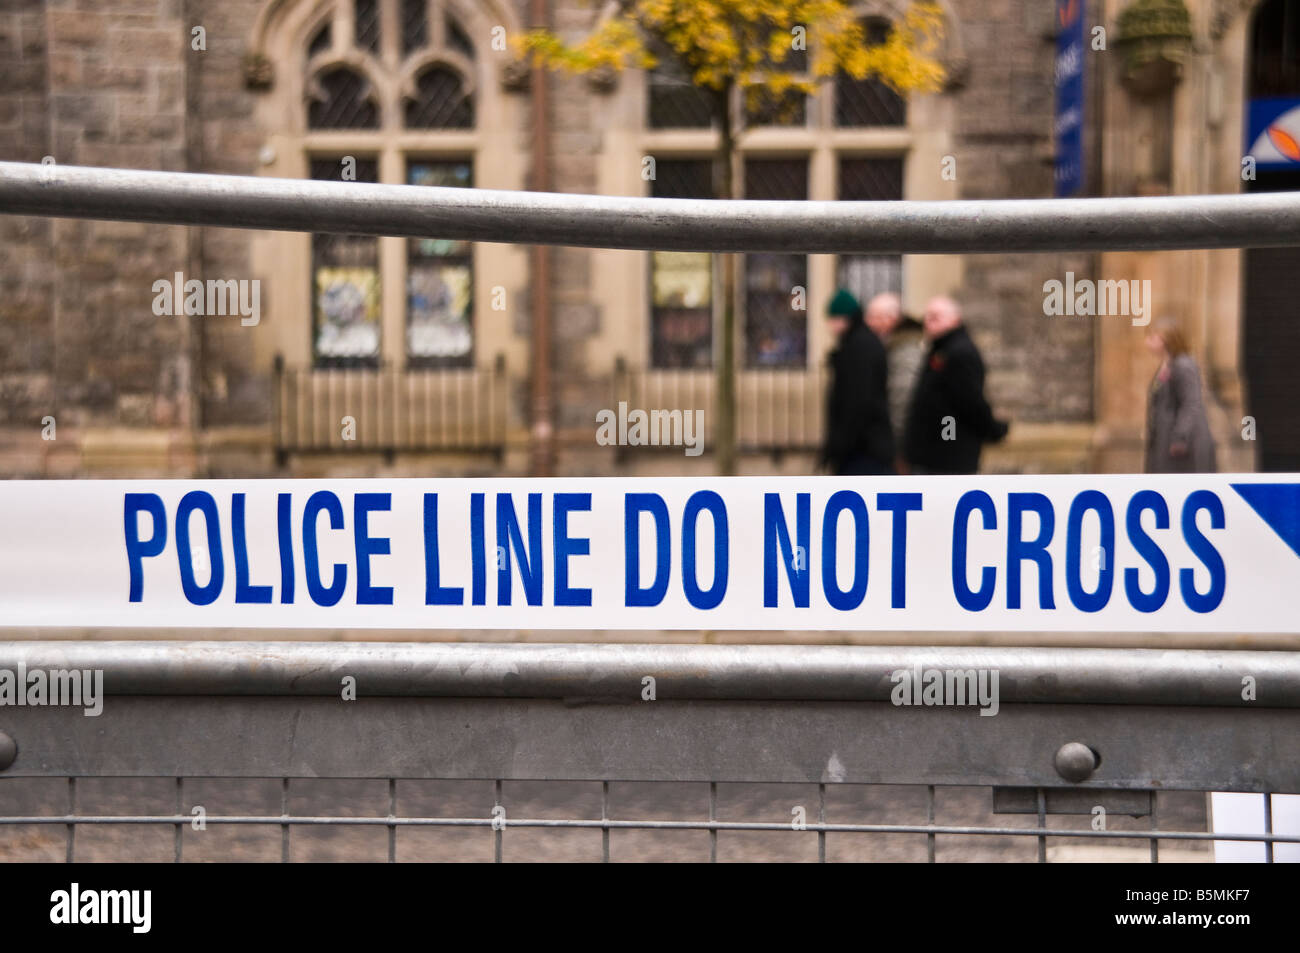 Police line do not cross tape blocking off a road following an incident Stock Photo